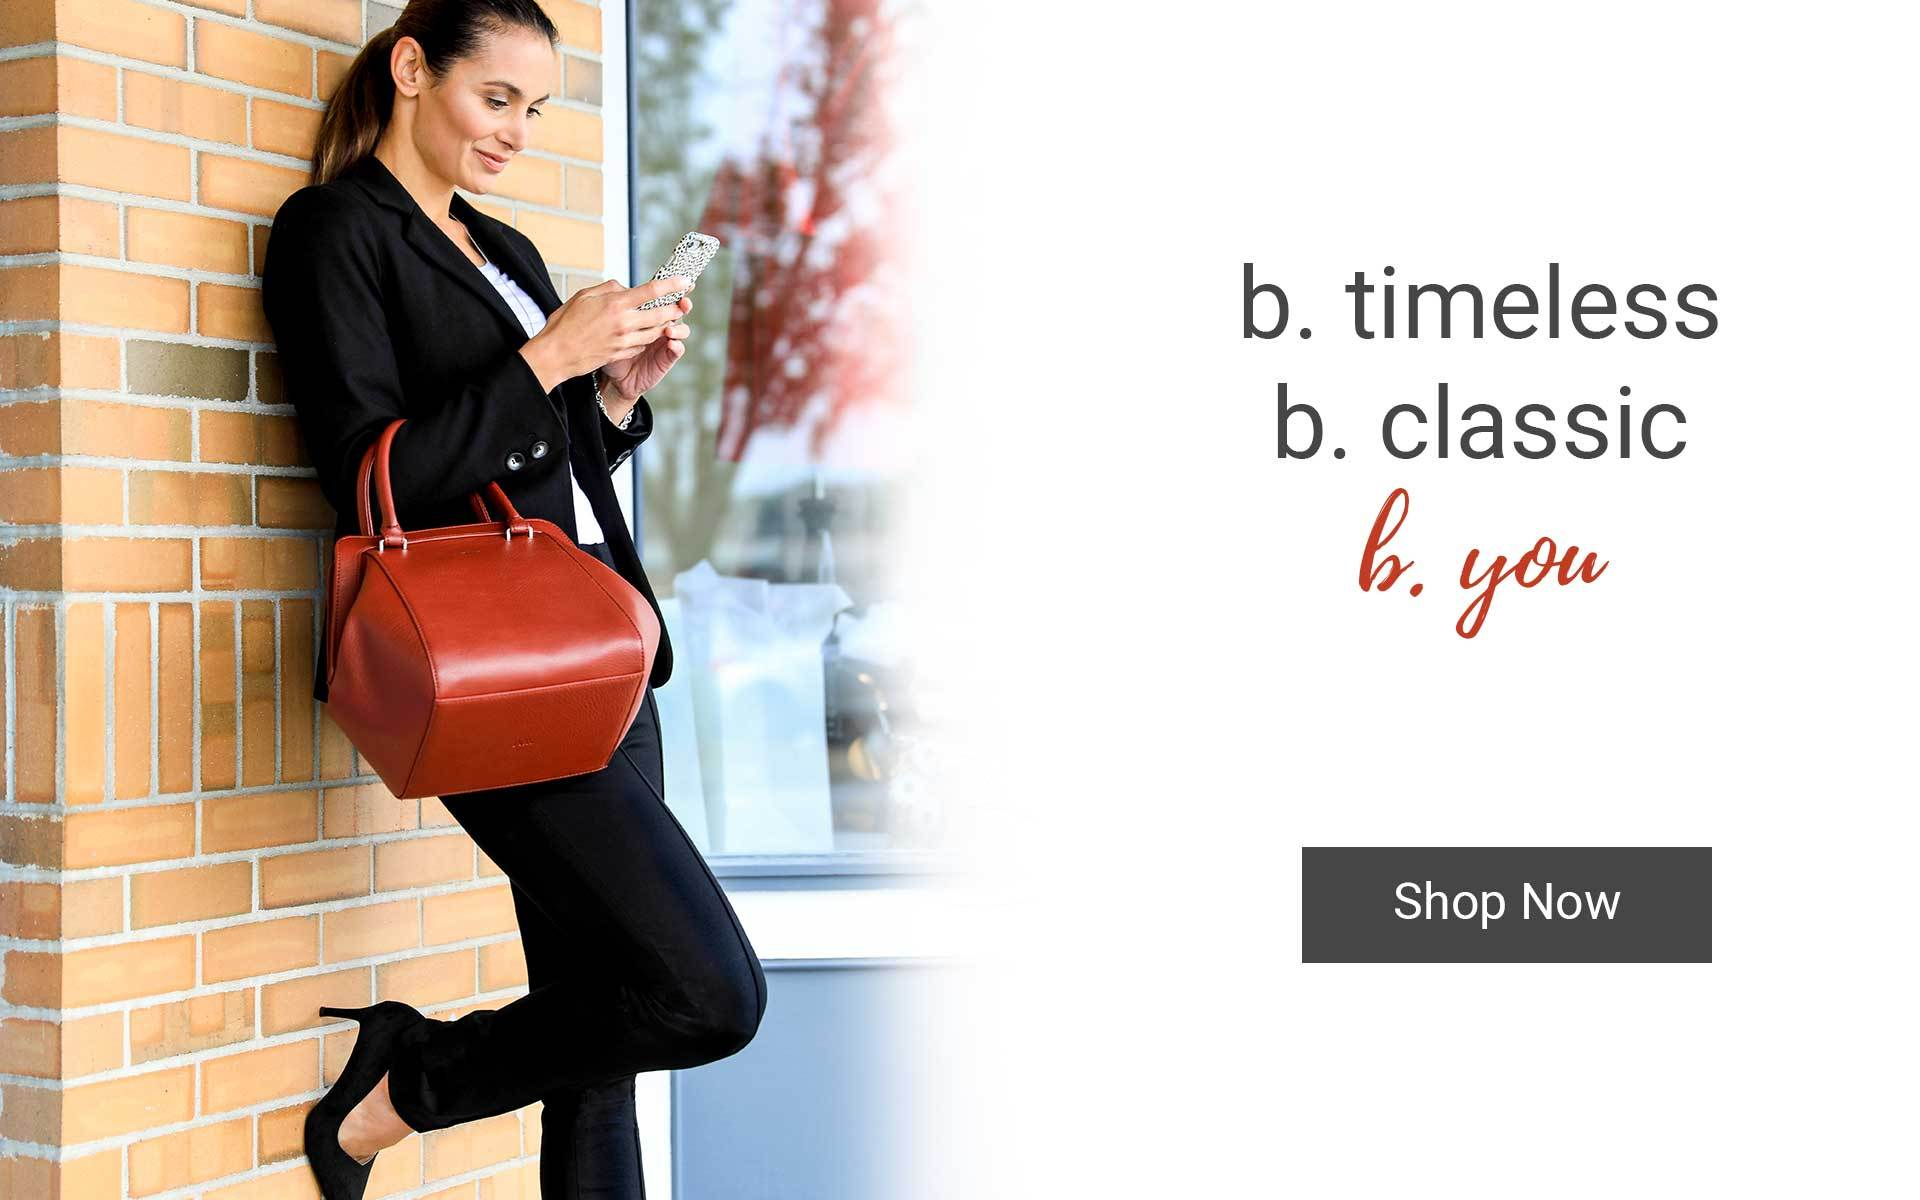 Professional Women's Clothing Holiday Gifts